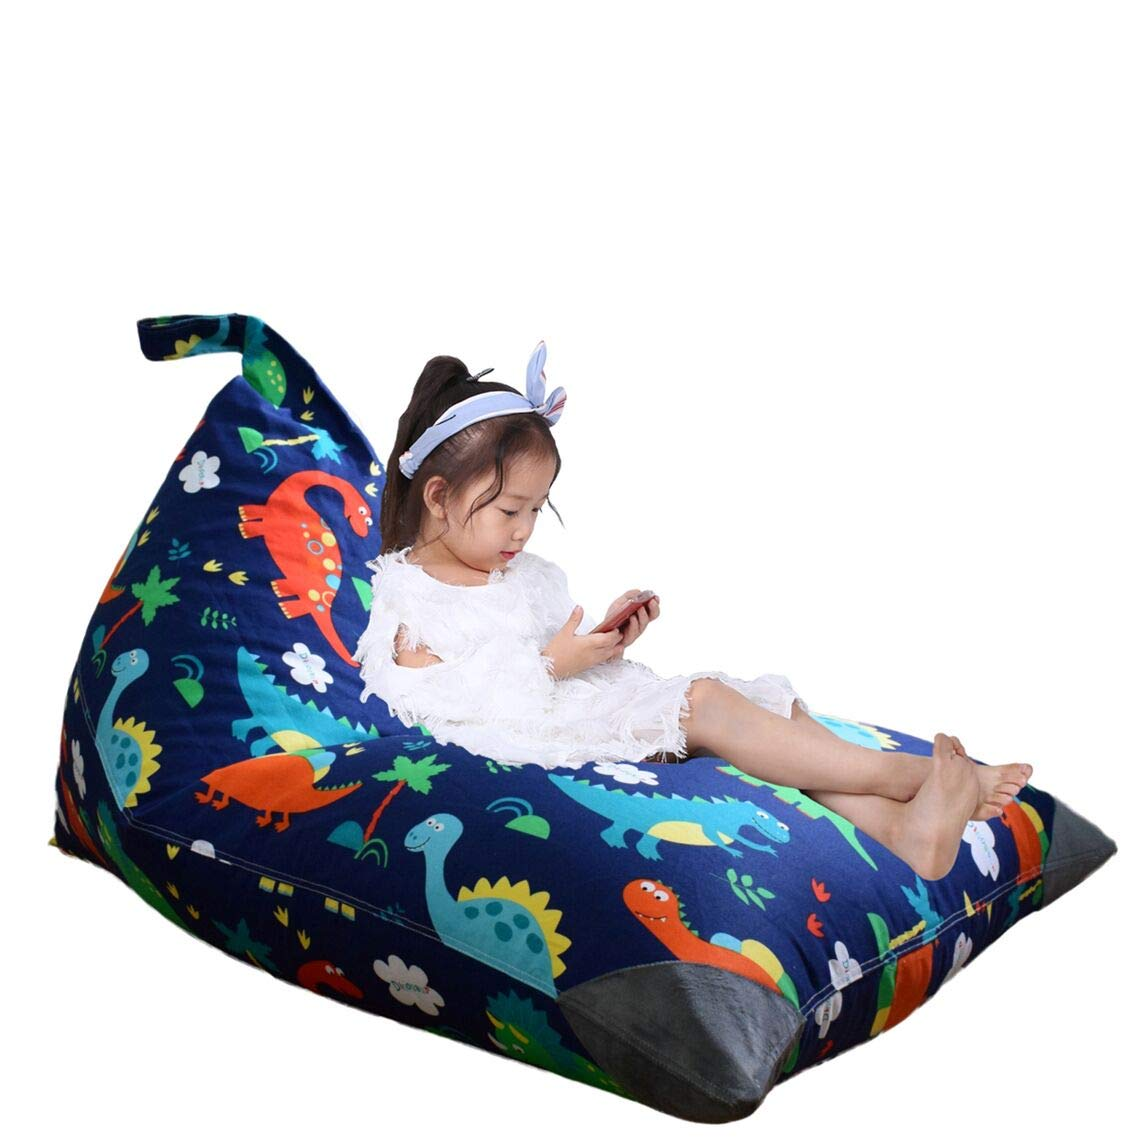 Stuffed Animal Storage Bean Bag Chair for Kids and Adults. Premium Canvas Stuffie Seat – Cover ONLY Dinosaur 200L 52 Gal